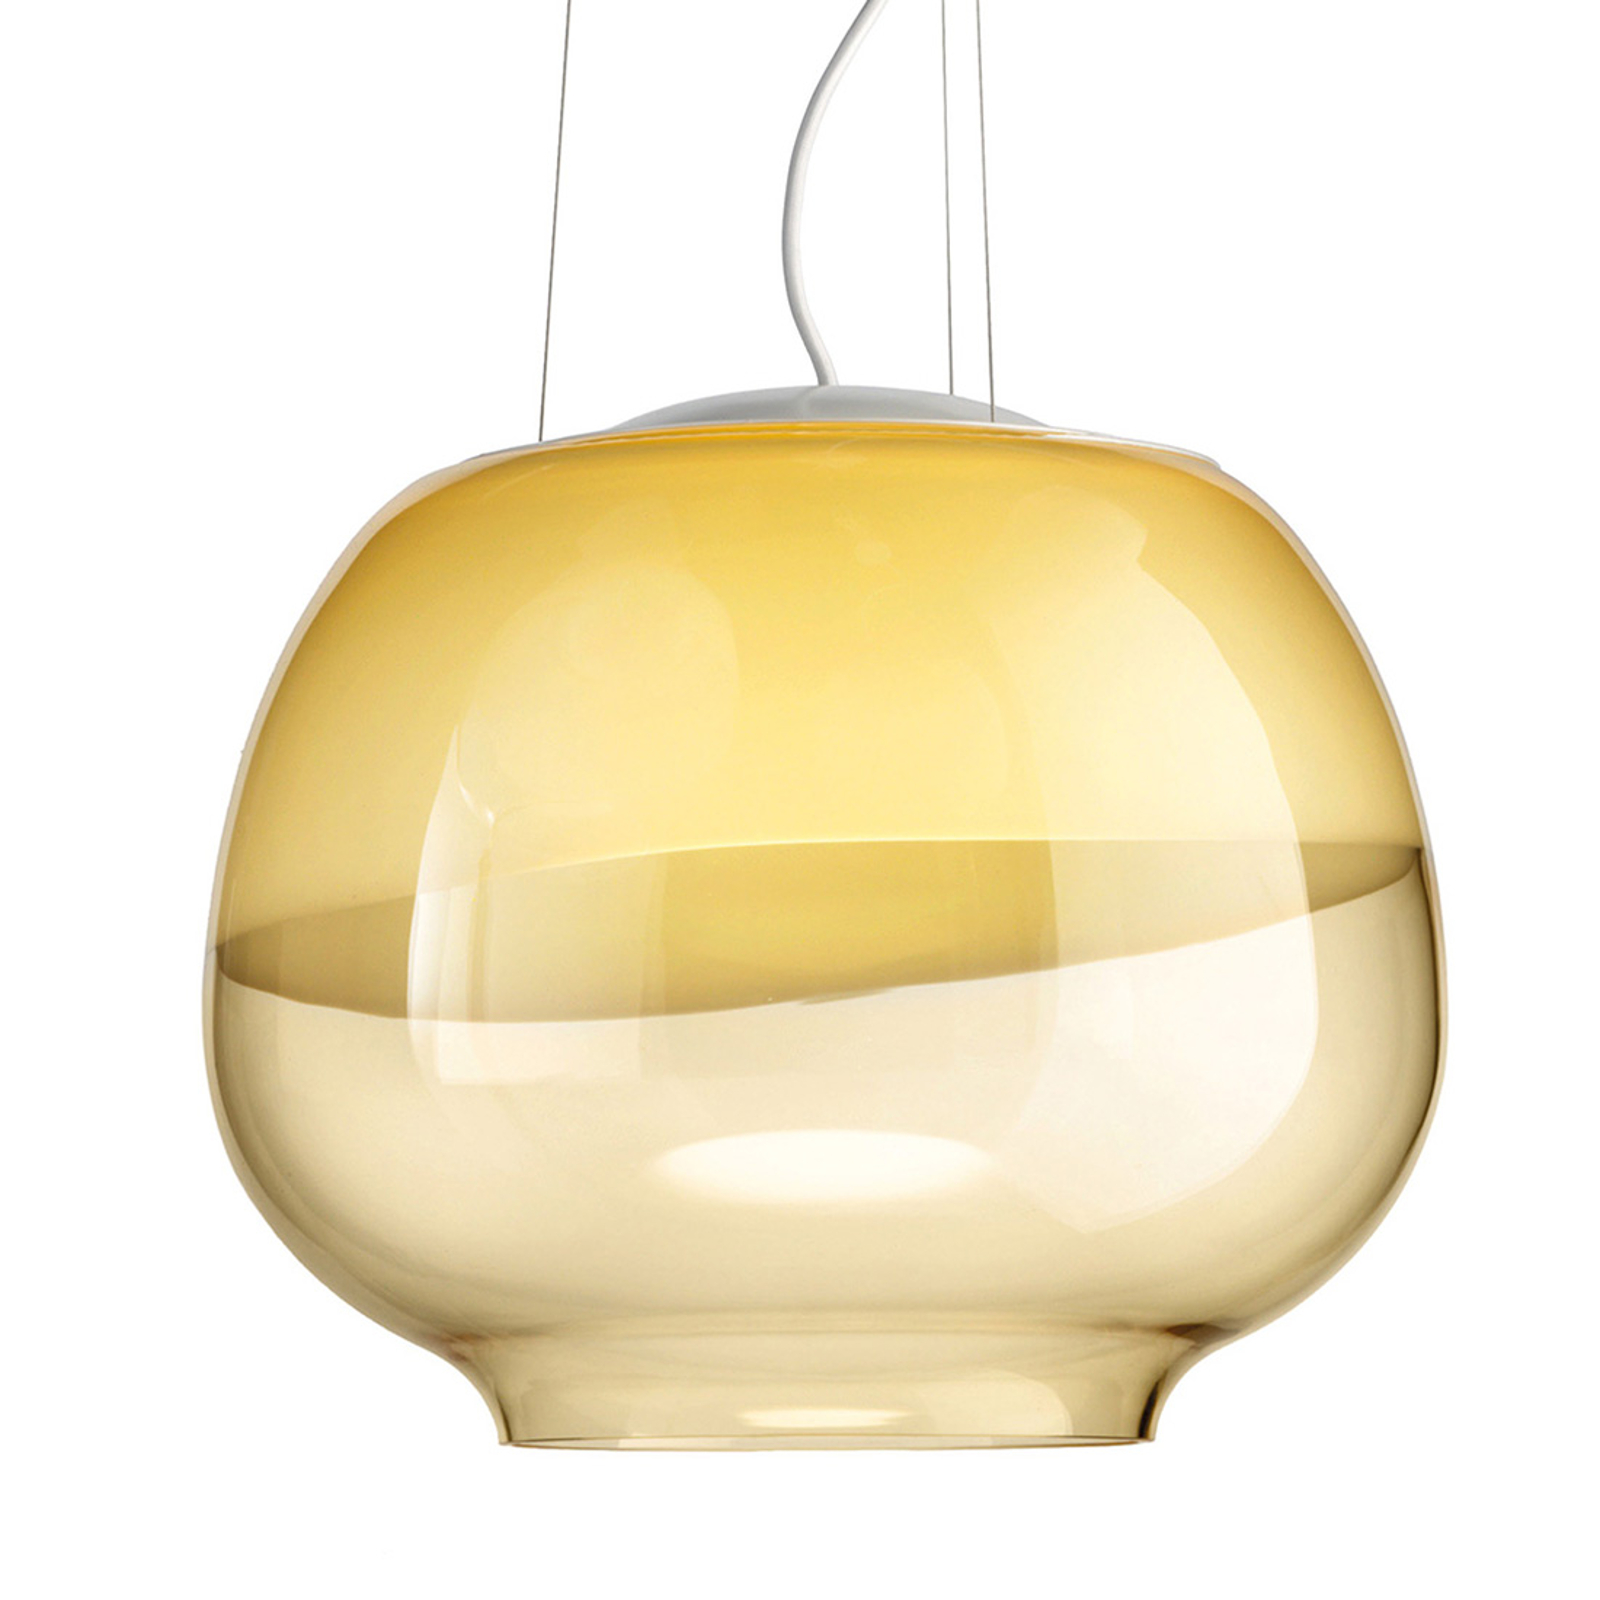 Suspension de designer Mirage SP, ambre